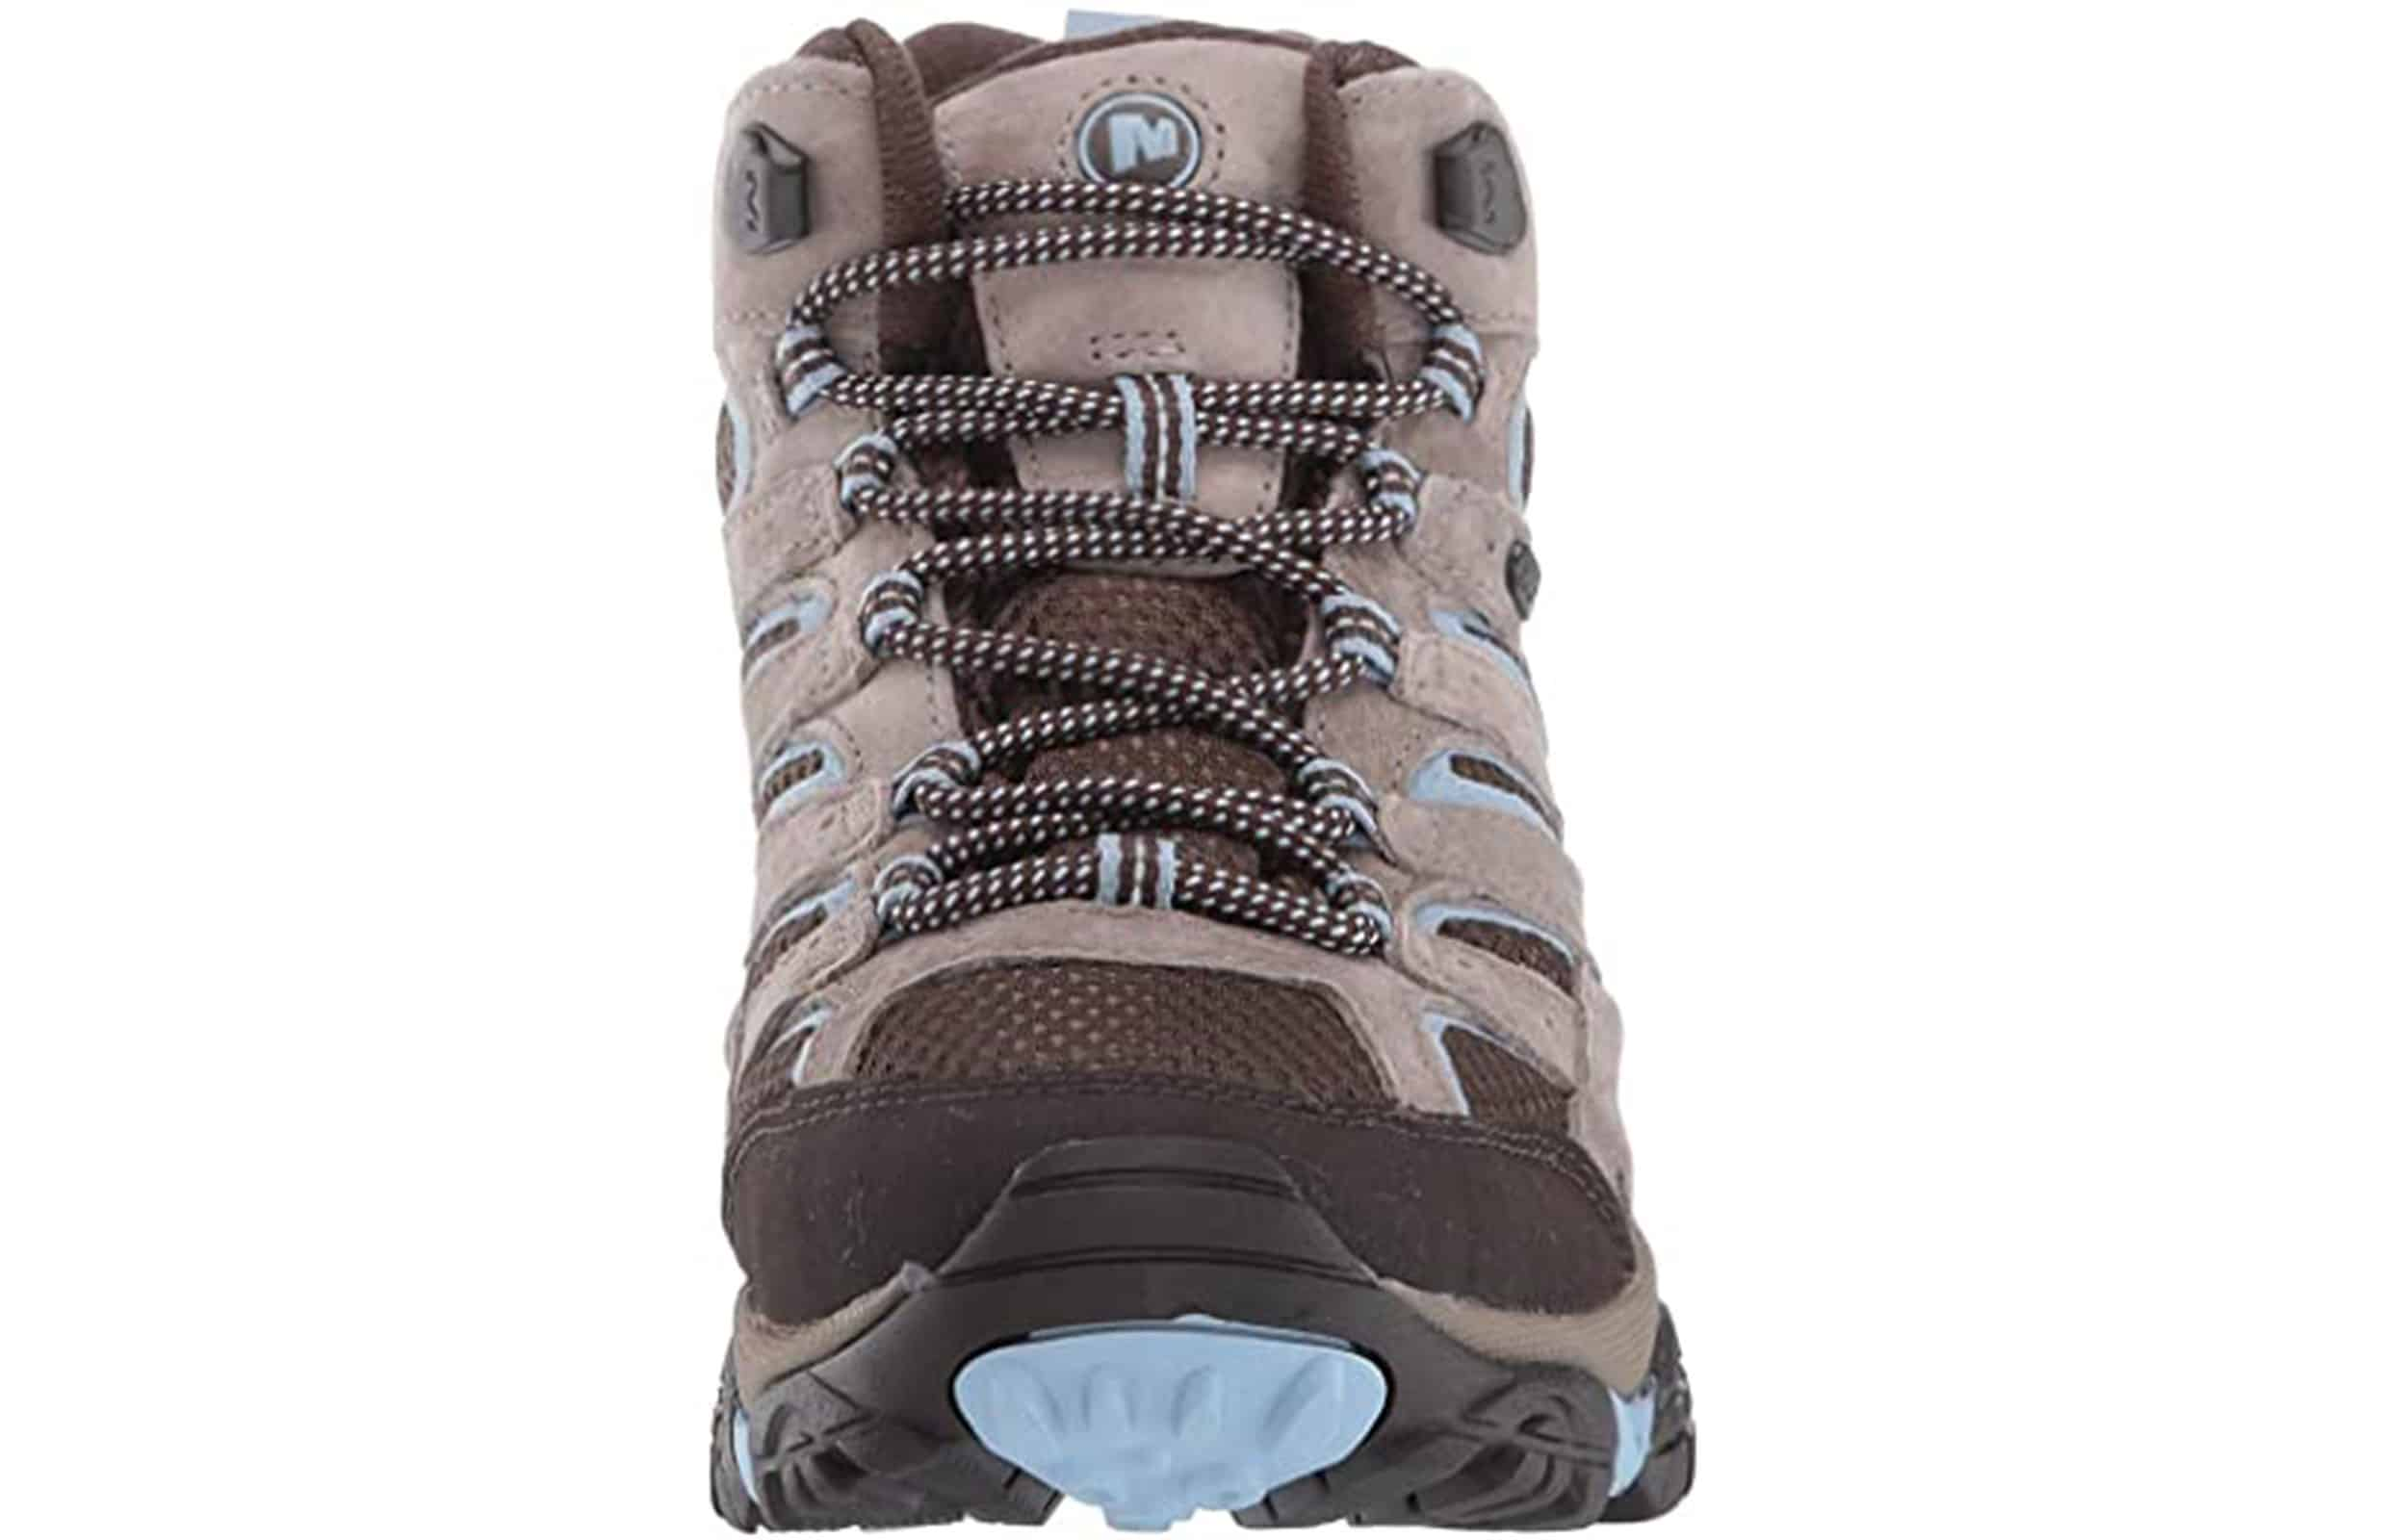 front view of merrell moab 2 hiking boots